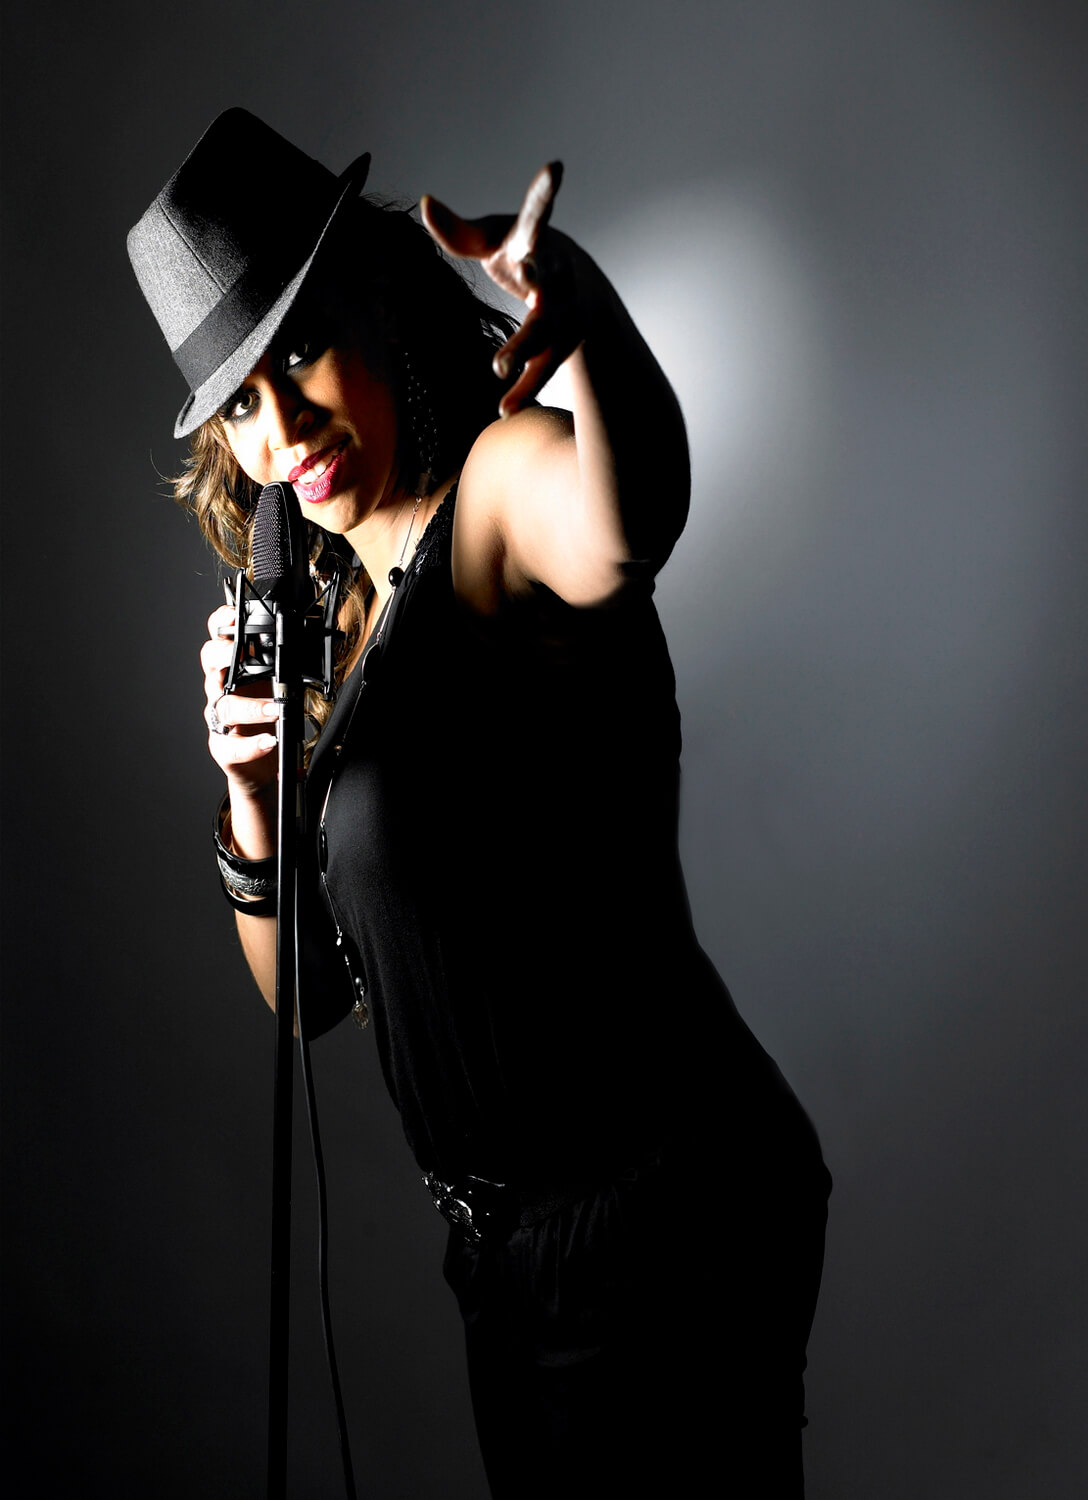 Studio portrait photographer for singer and musician on location, Powerful, vibrant photography in Birmingham